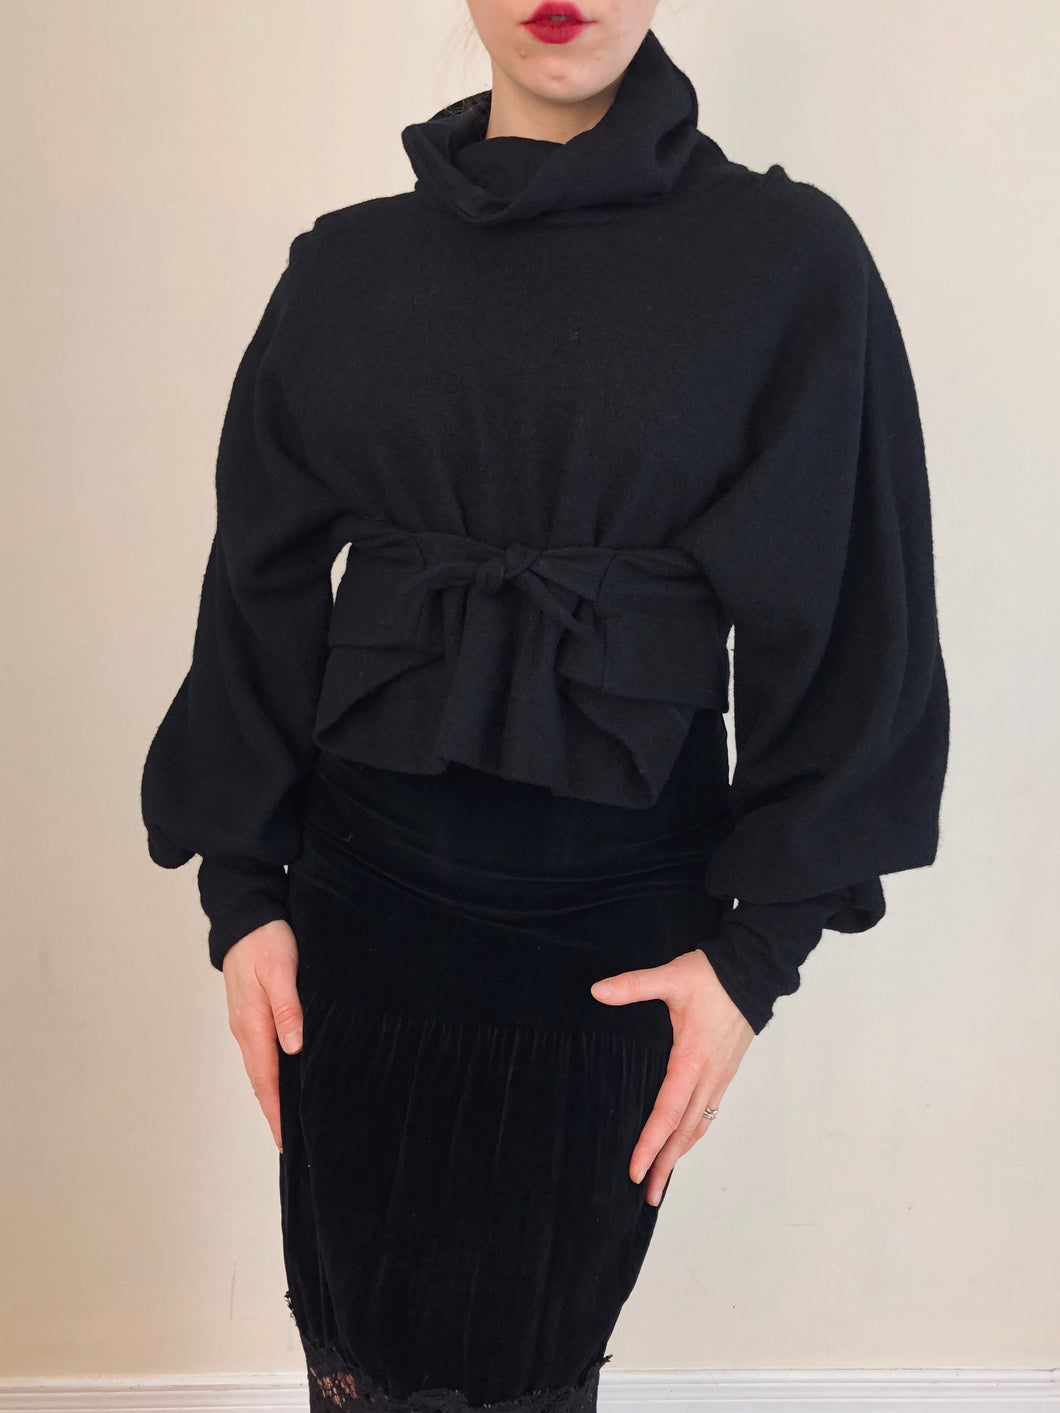 Sample Sale 2021: Black Wool Funnel Pullover w/Triangle Ties (One Size)